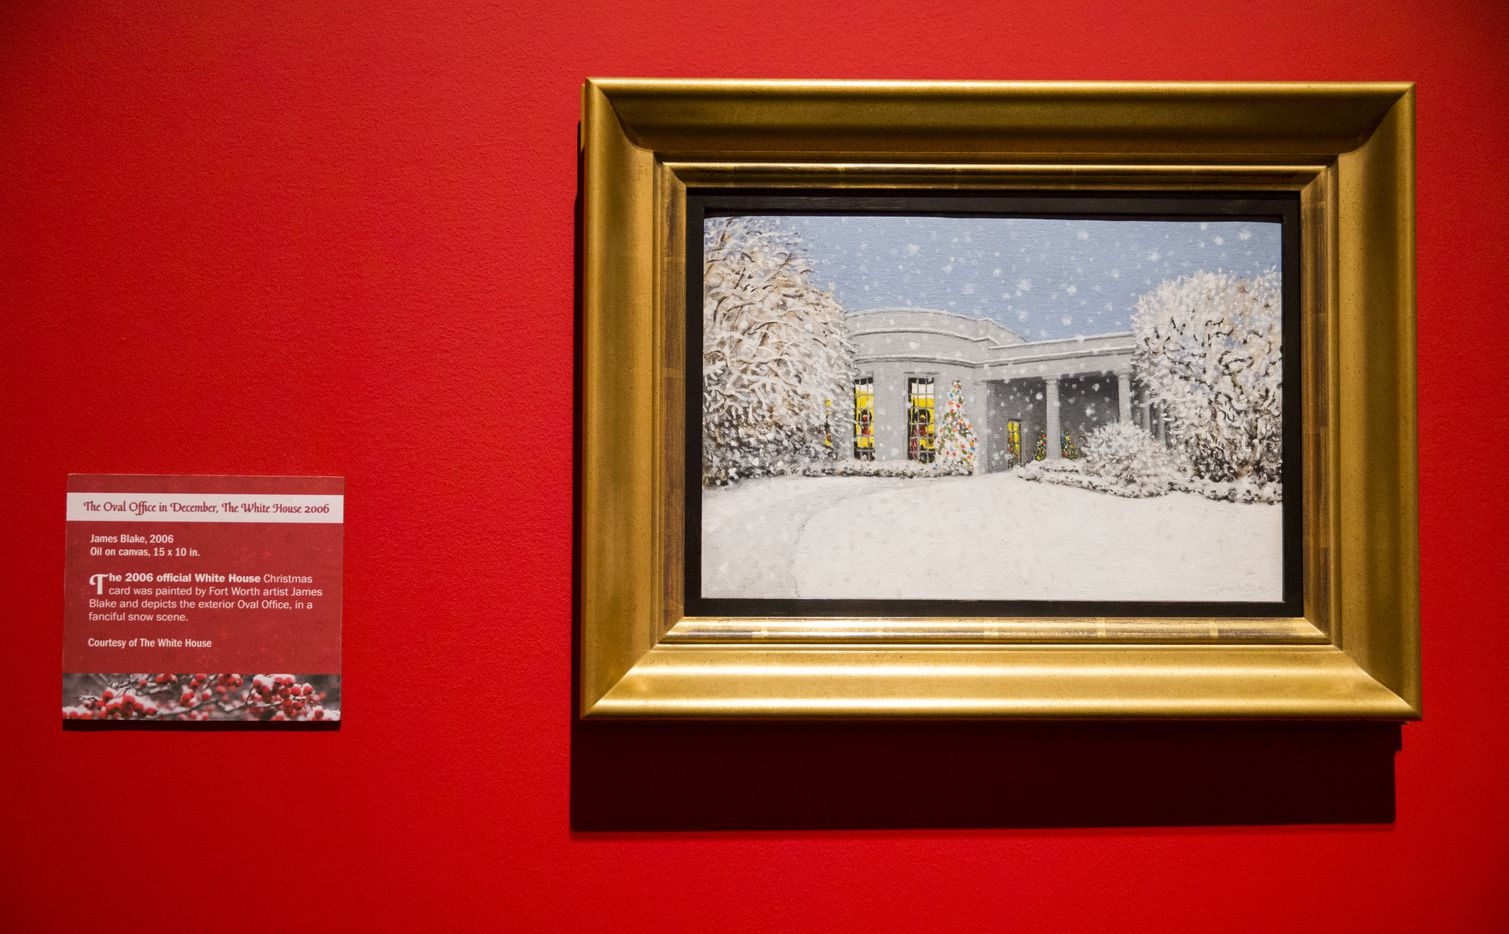 A painting by James Blake of the White House at Christmas time is displayed at a Christmas exhibit at The George W. Bush Presidential Center and Library on Thursday, November 15, 2018 on the SMU campus in Dallas. This year's theme is Deck the Halls and Welcome All: Christmas at the White House 2006. (Ashley Landis/The Dallas Morning News)